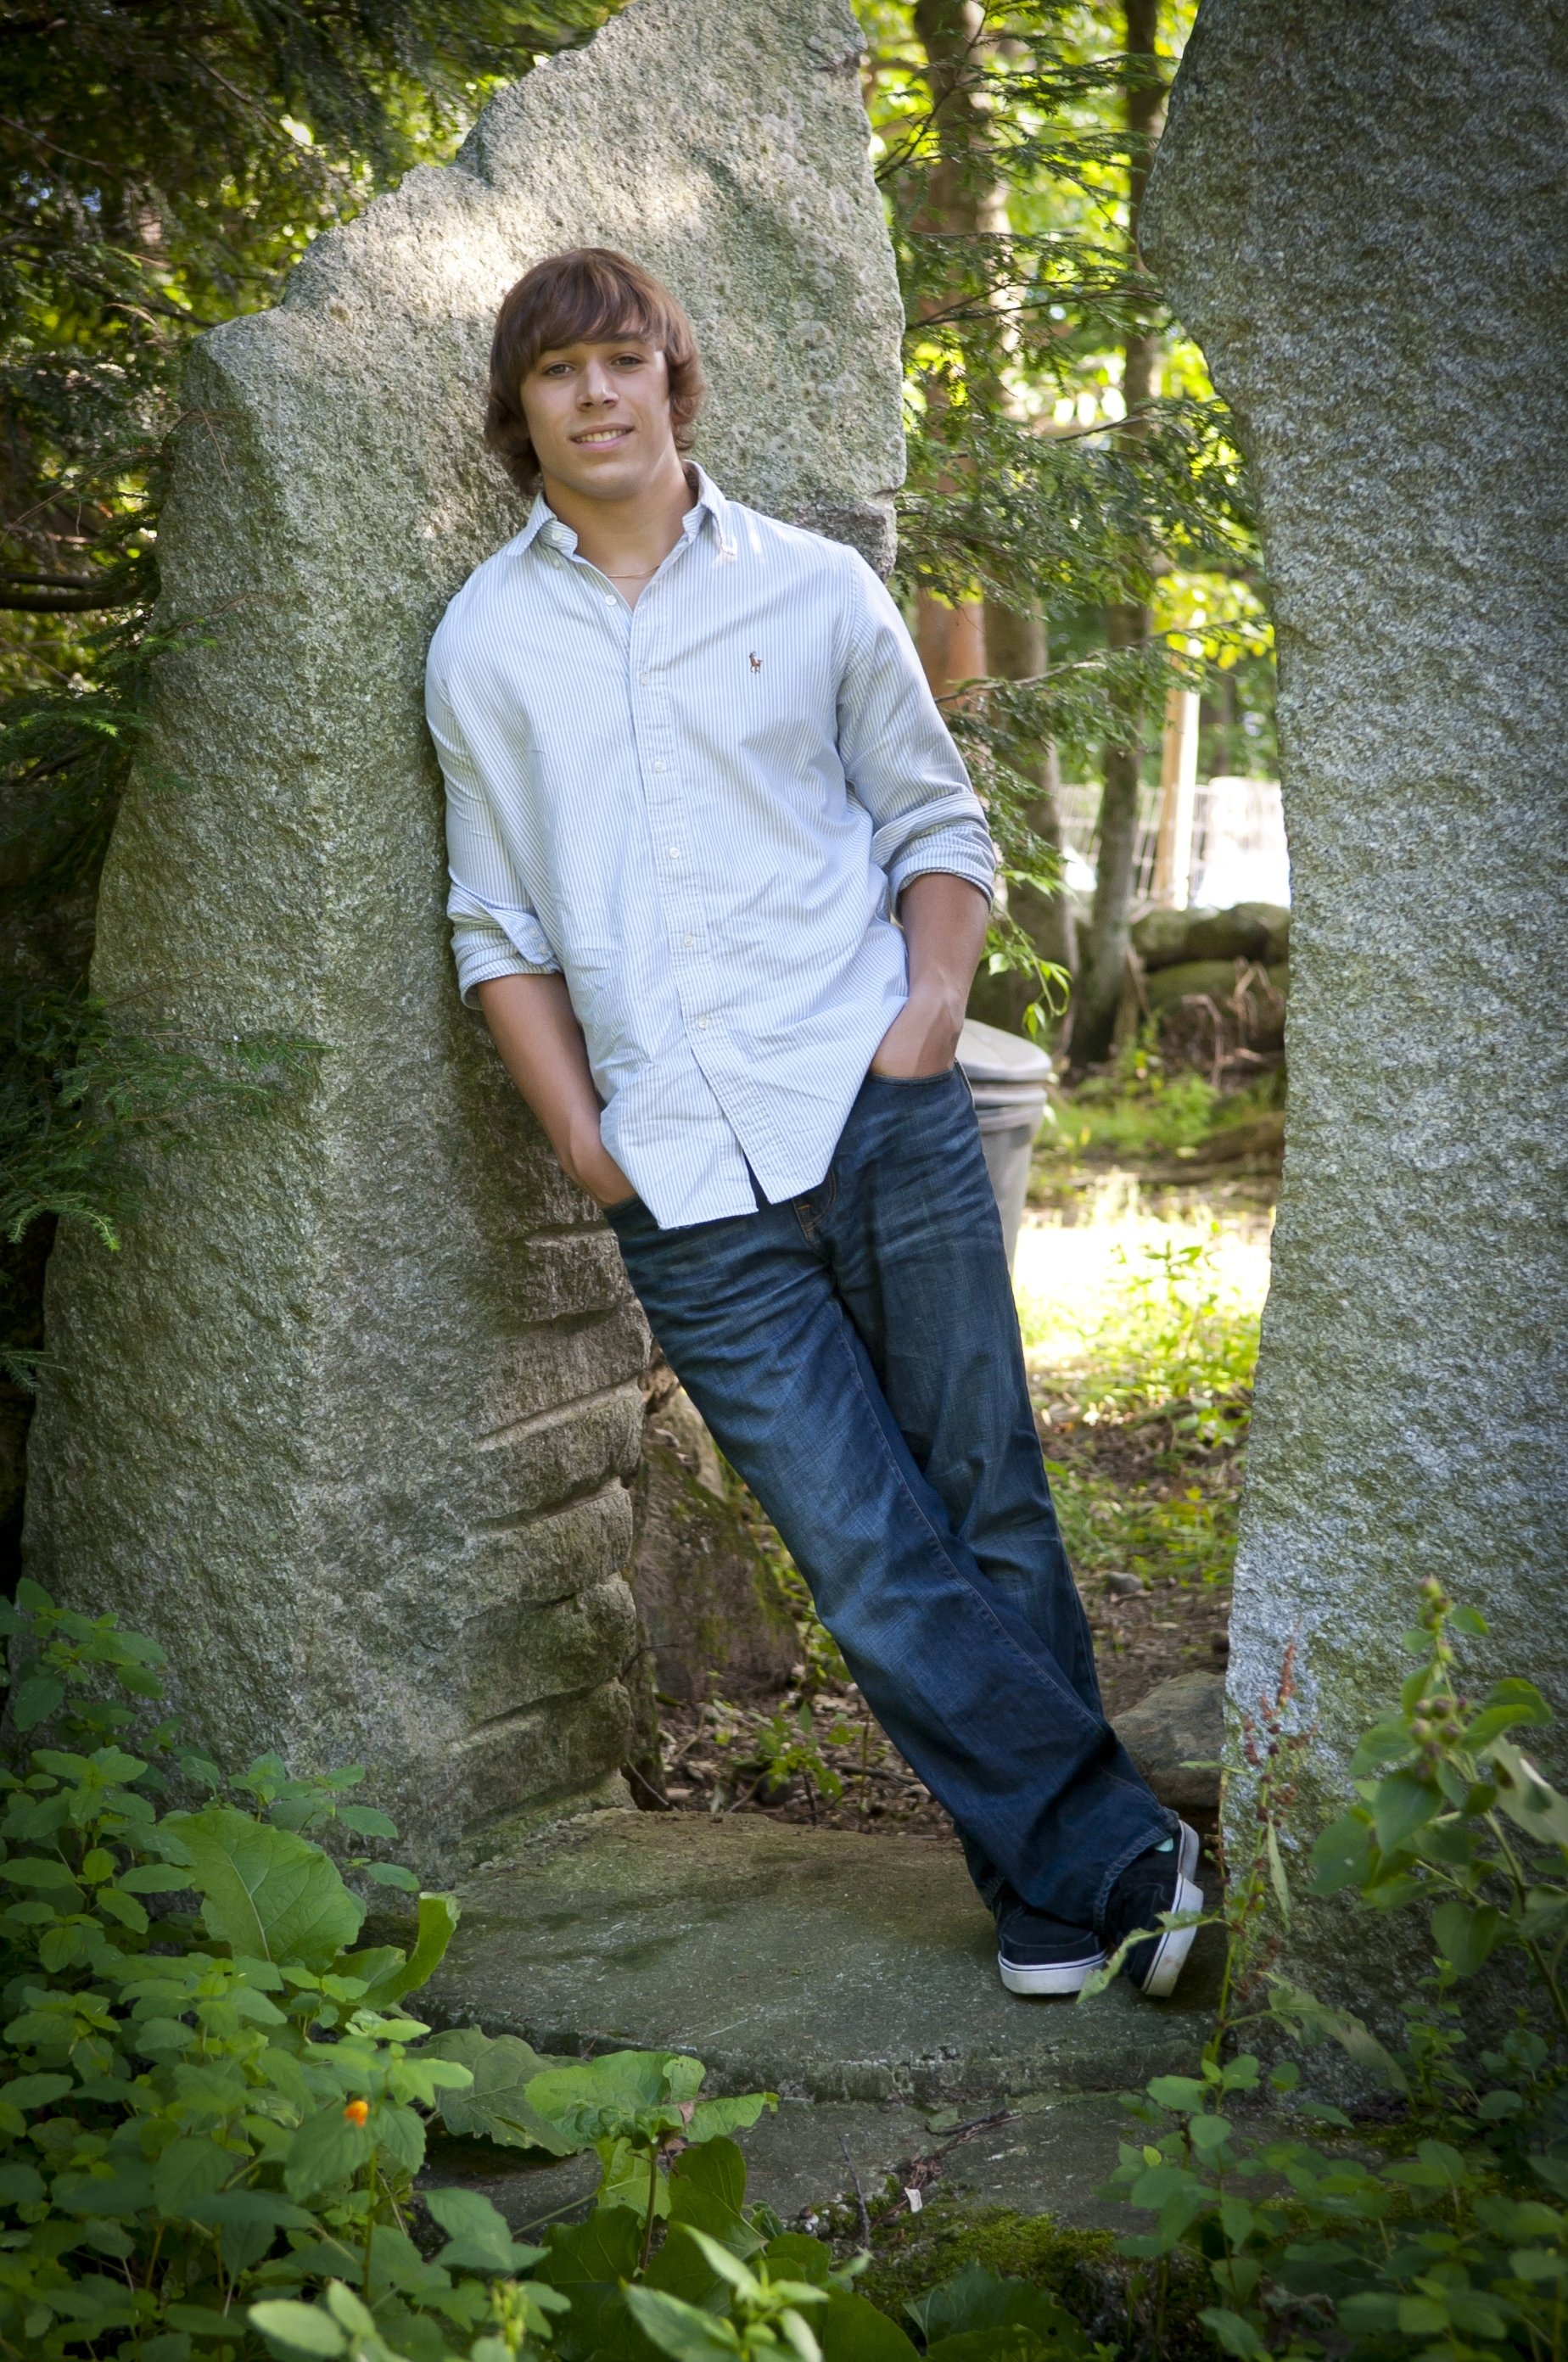 10 Lovable Senior Portrait Ideas For Guys great casual pose between trees or concrete walls for a city look 1 2021